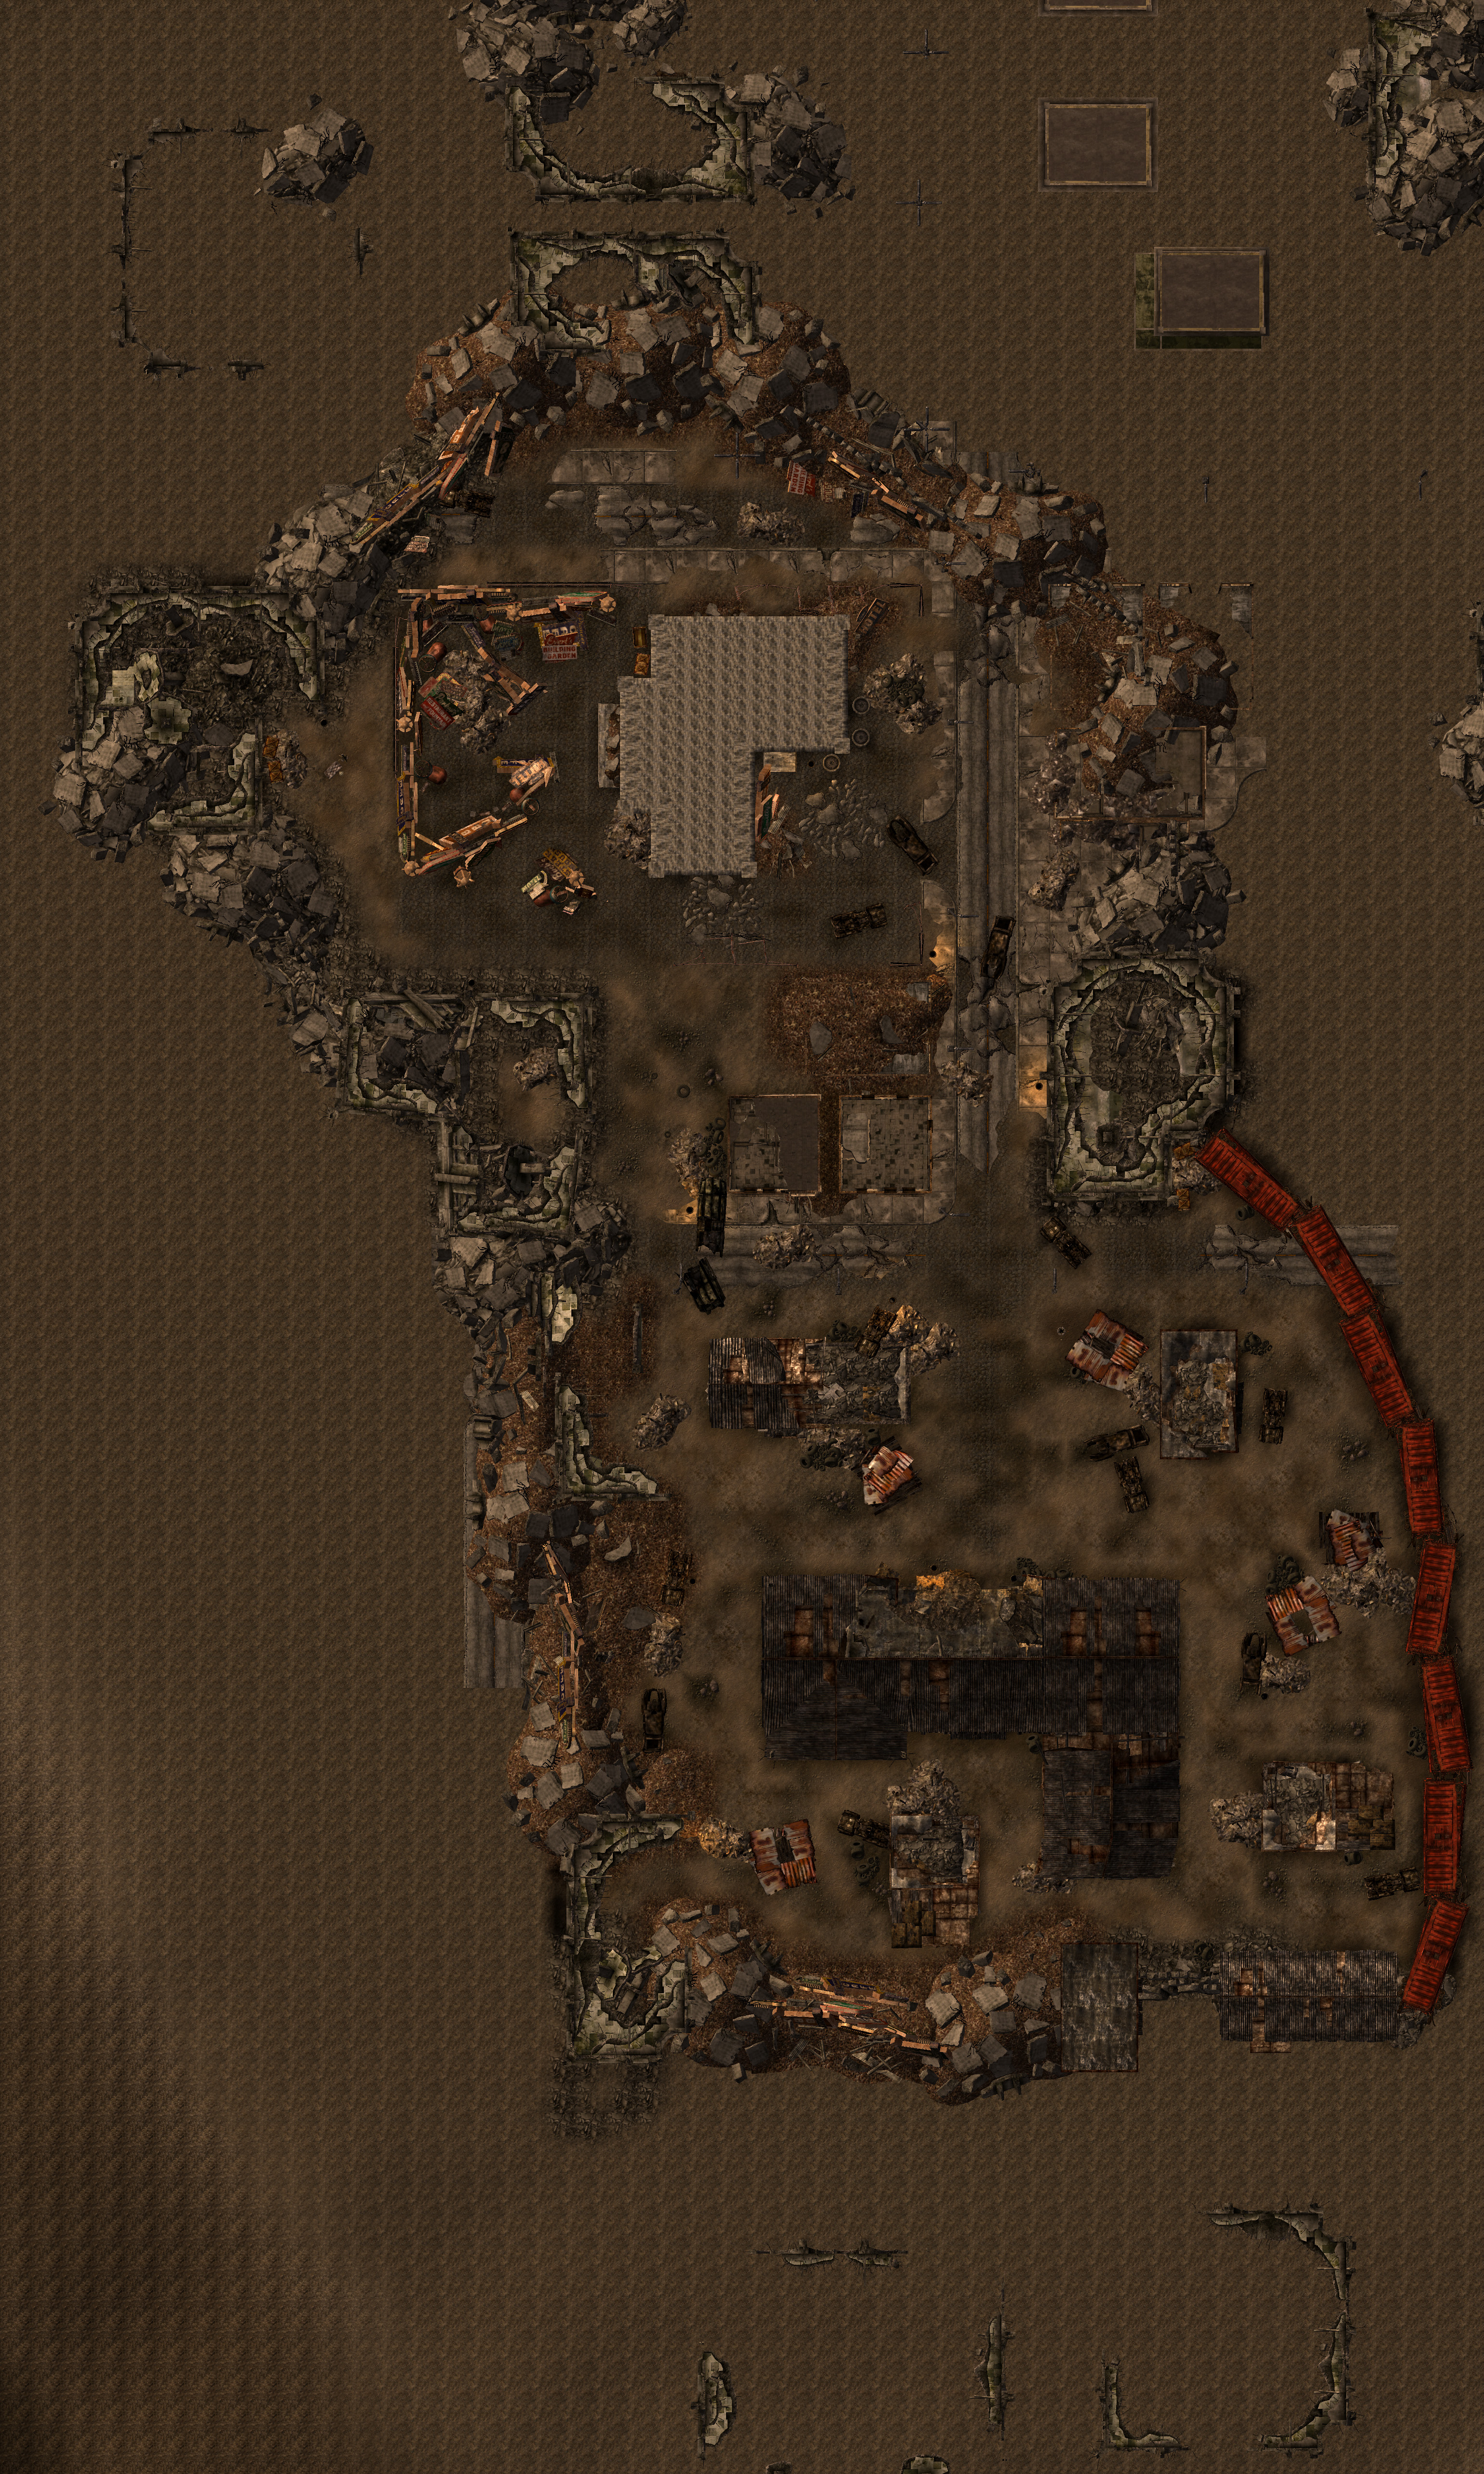 Fallout New Vegas Map Wiki Fandom Powered By Wikia Ps4 Akibaamp039s Beat Reg 2 South Ruins Edit